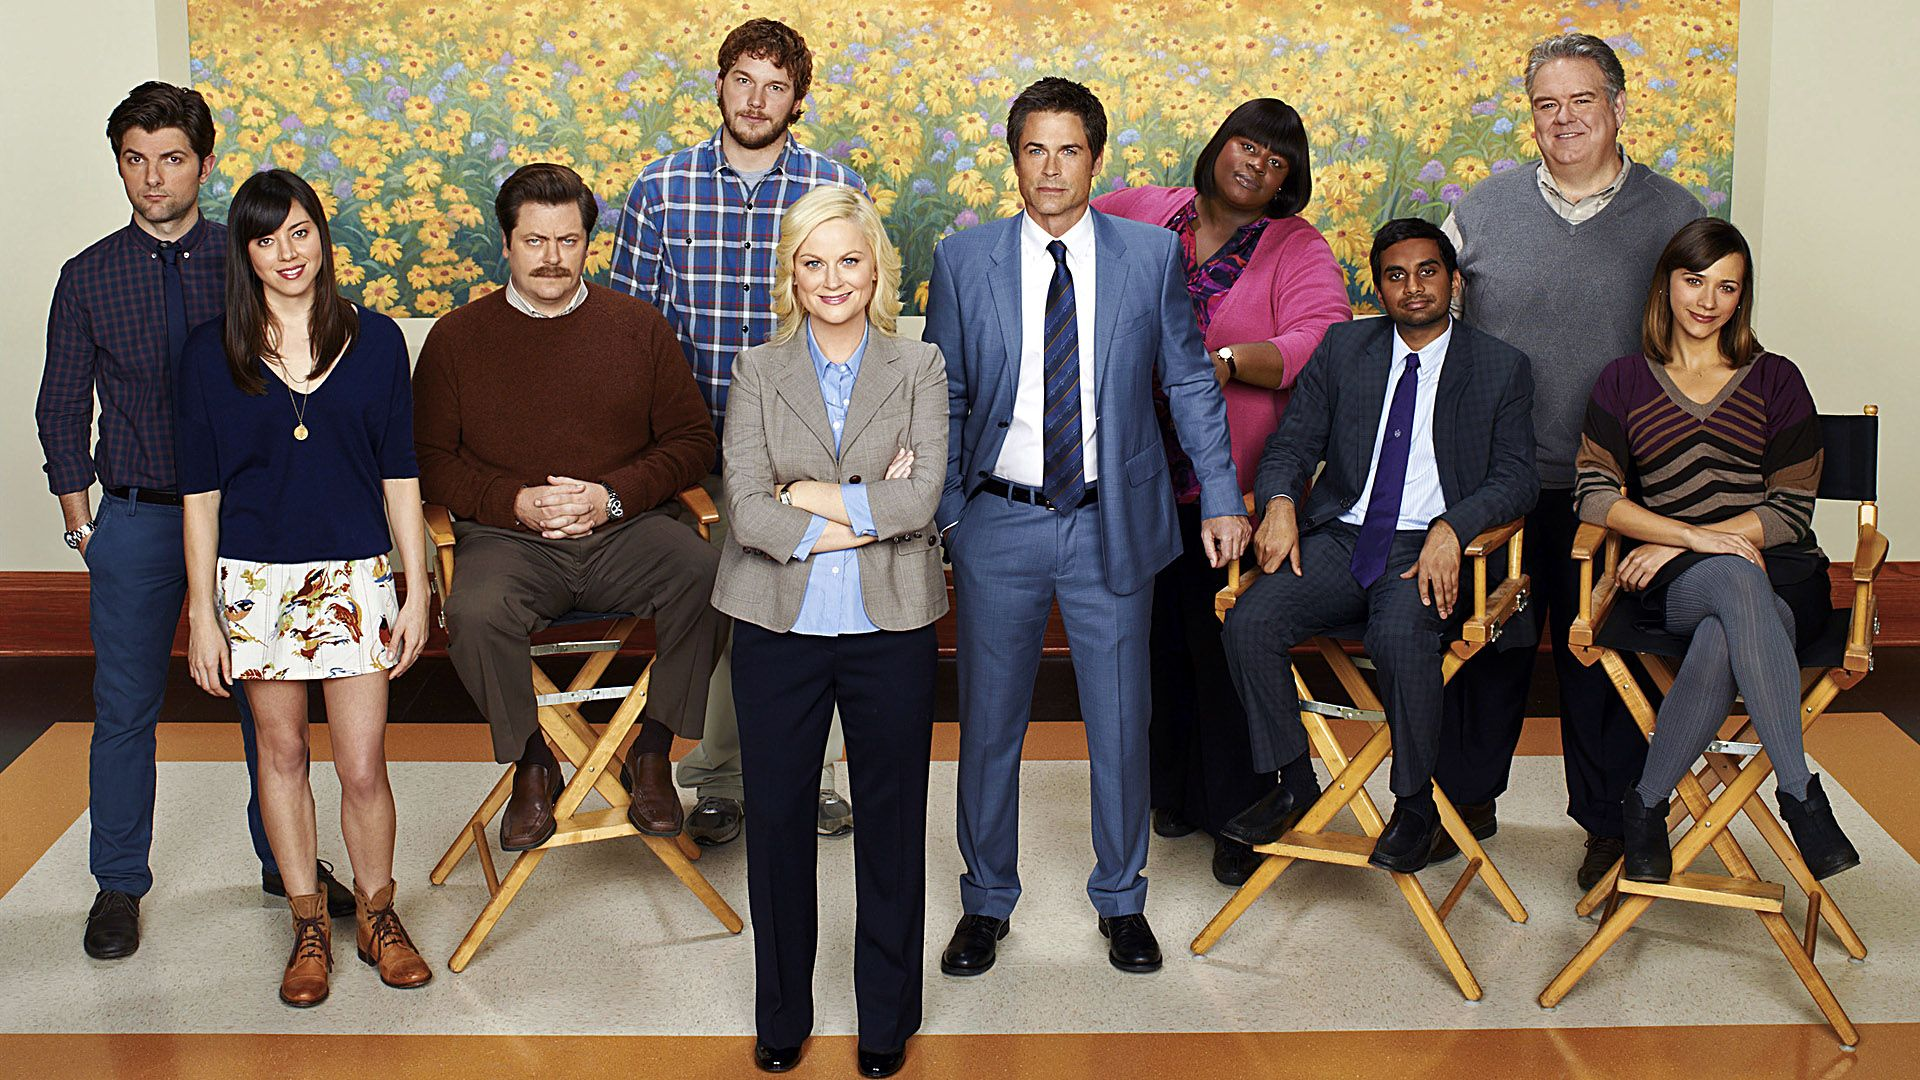 5 Parks And Recreation Episodes You Can Use In The Classroom